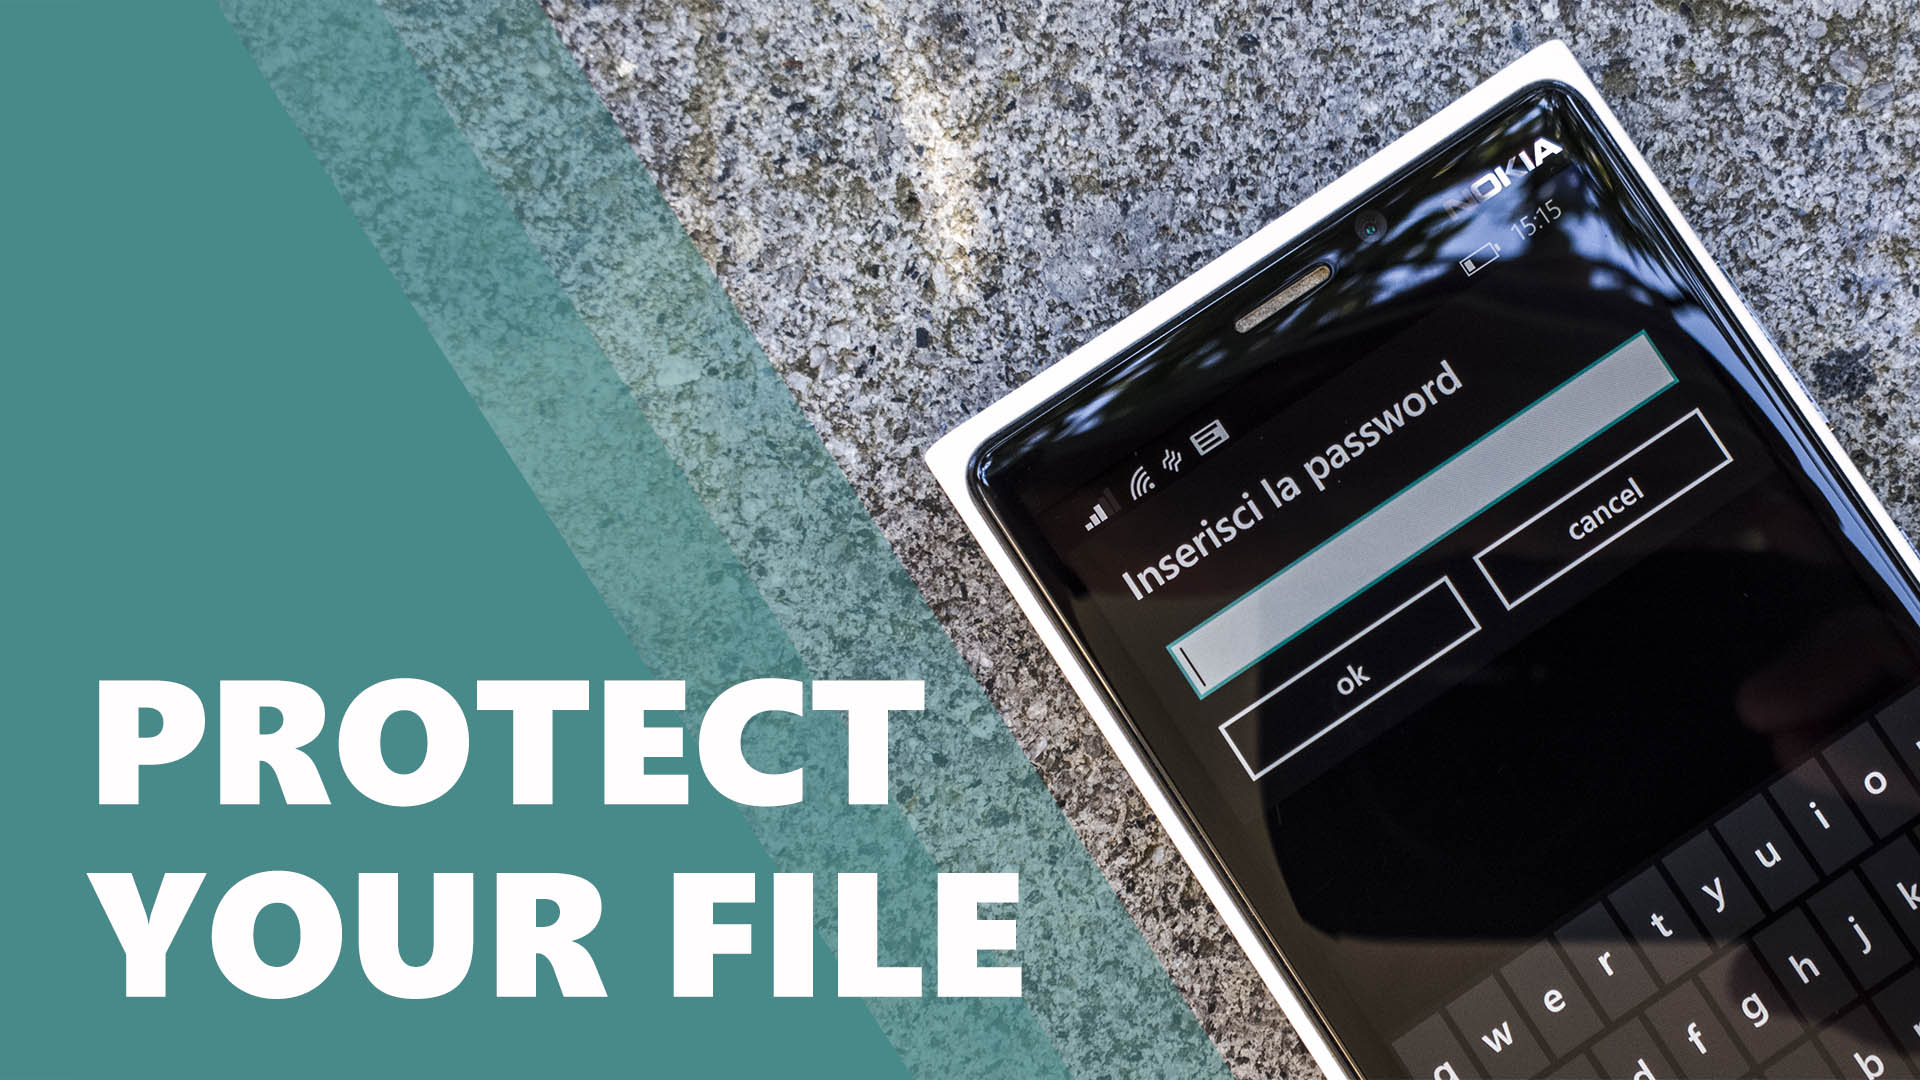 Protect Your File